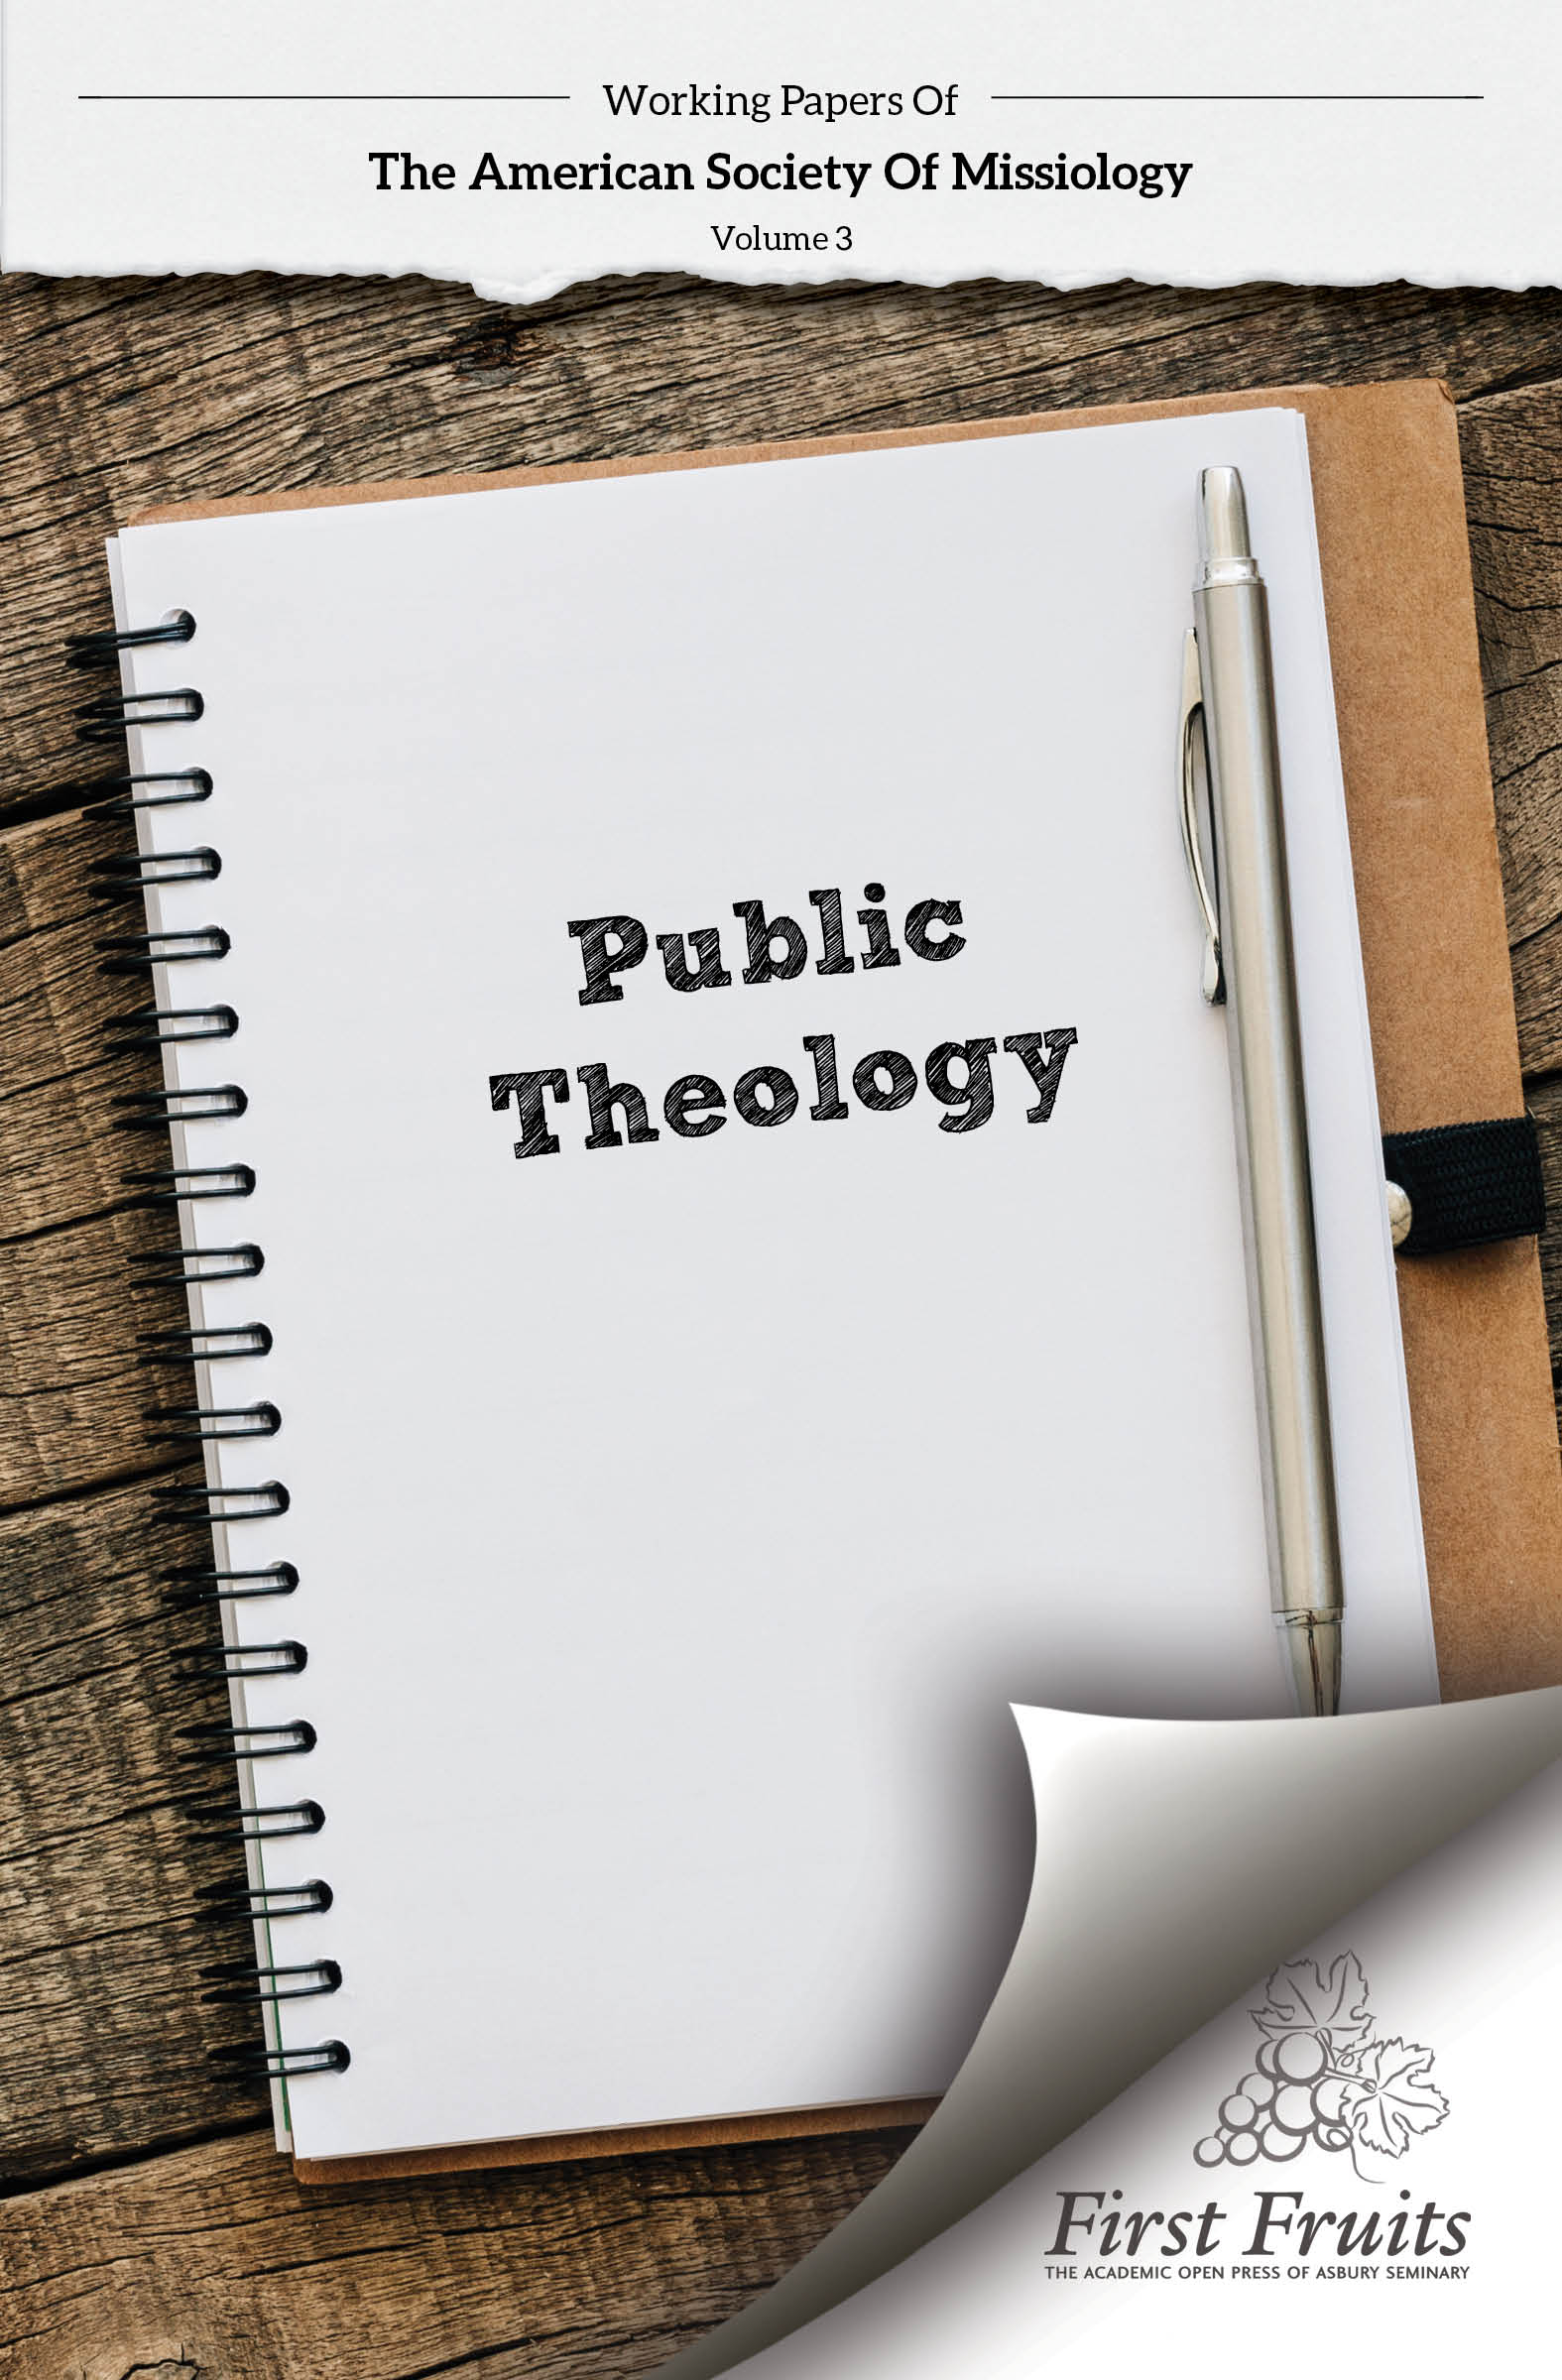 Working Papers of the American Society of Missiology; Vol. 3 Public Theology